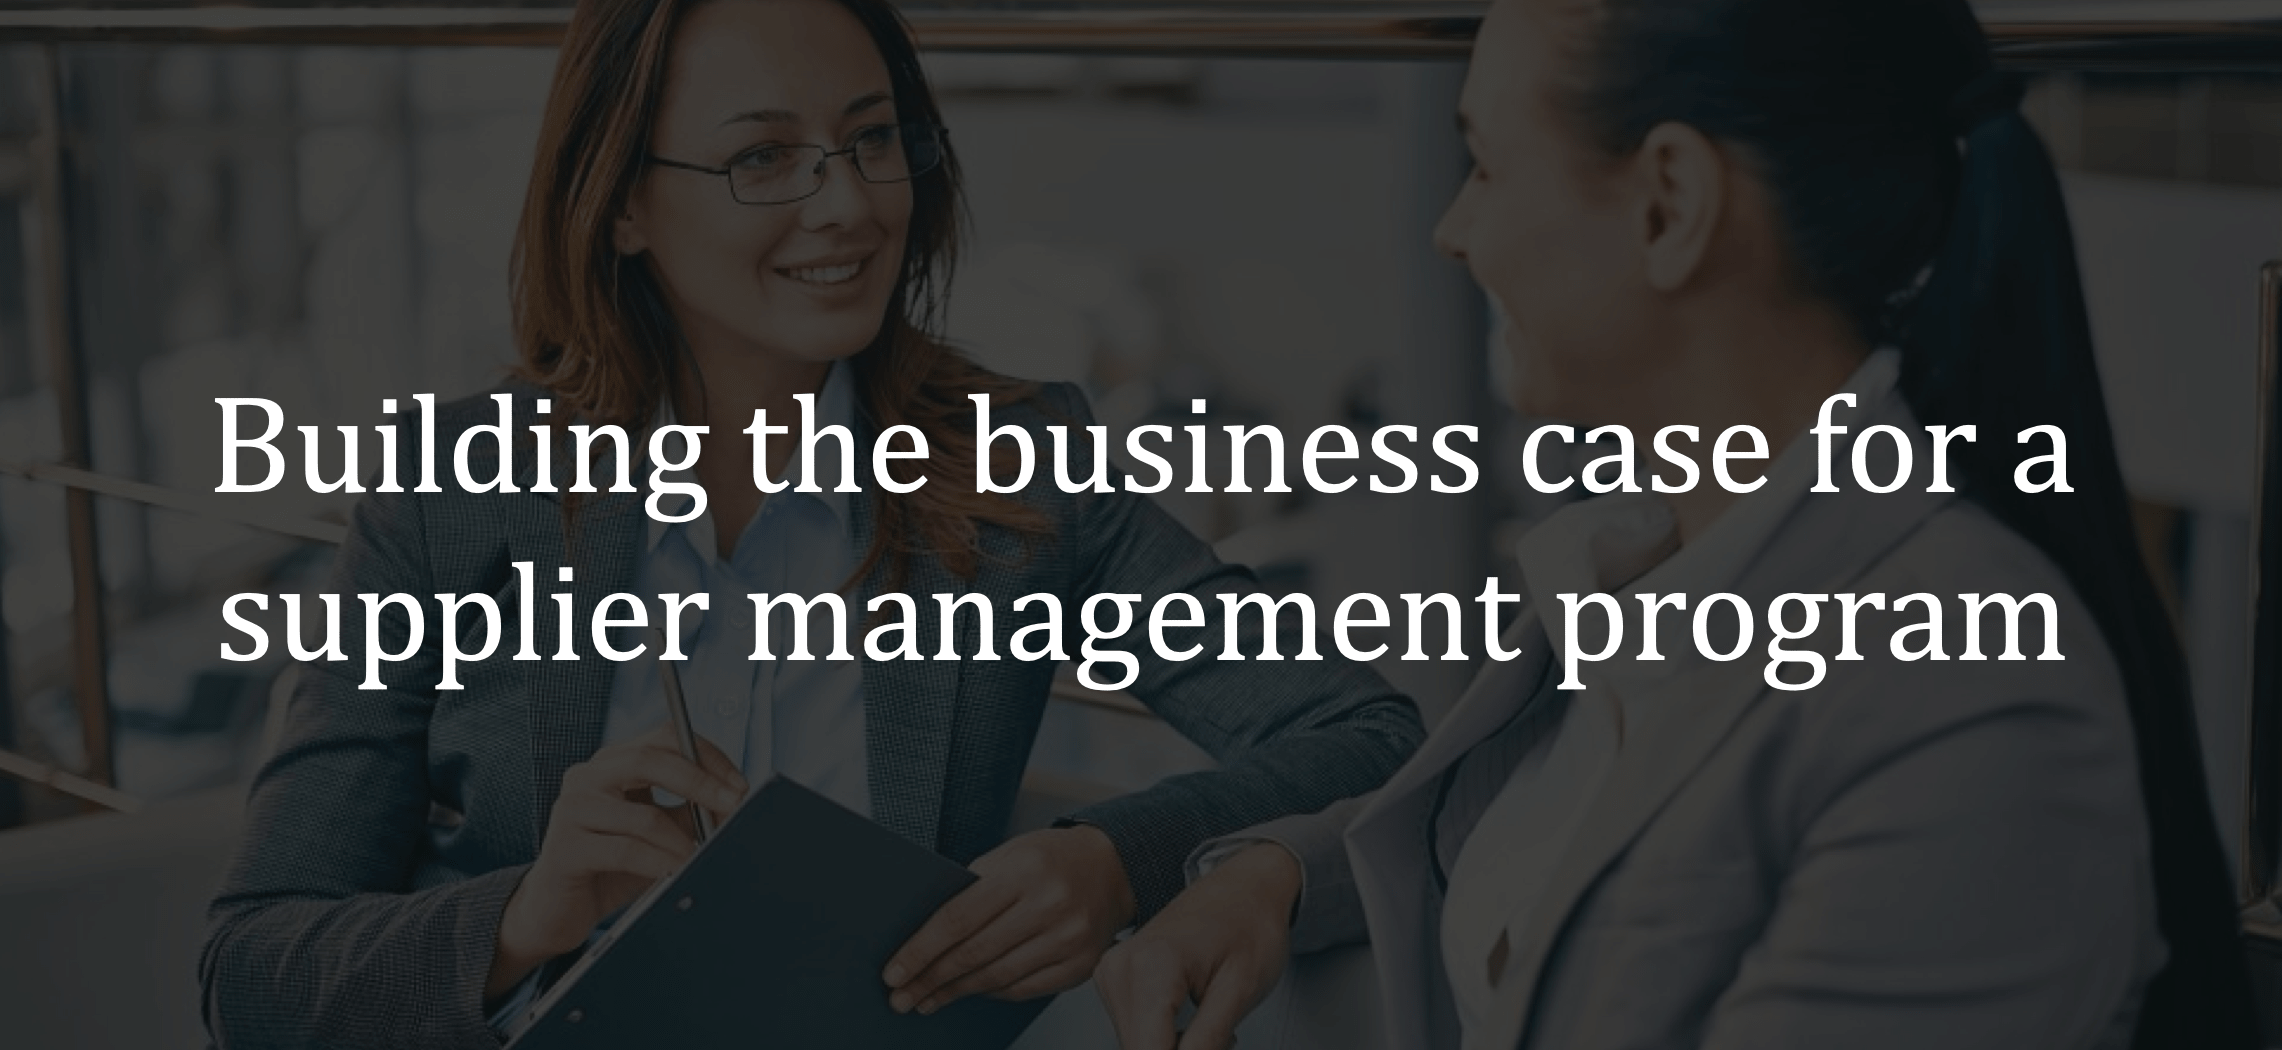 Building business case for a supplier management program